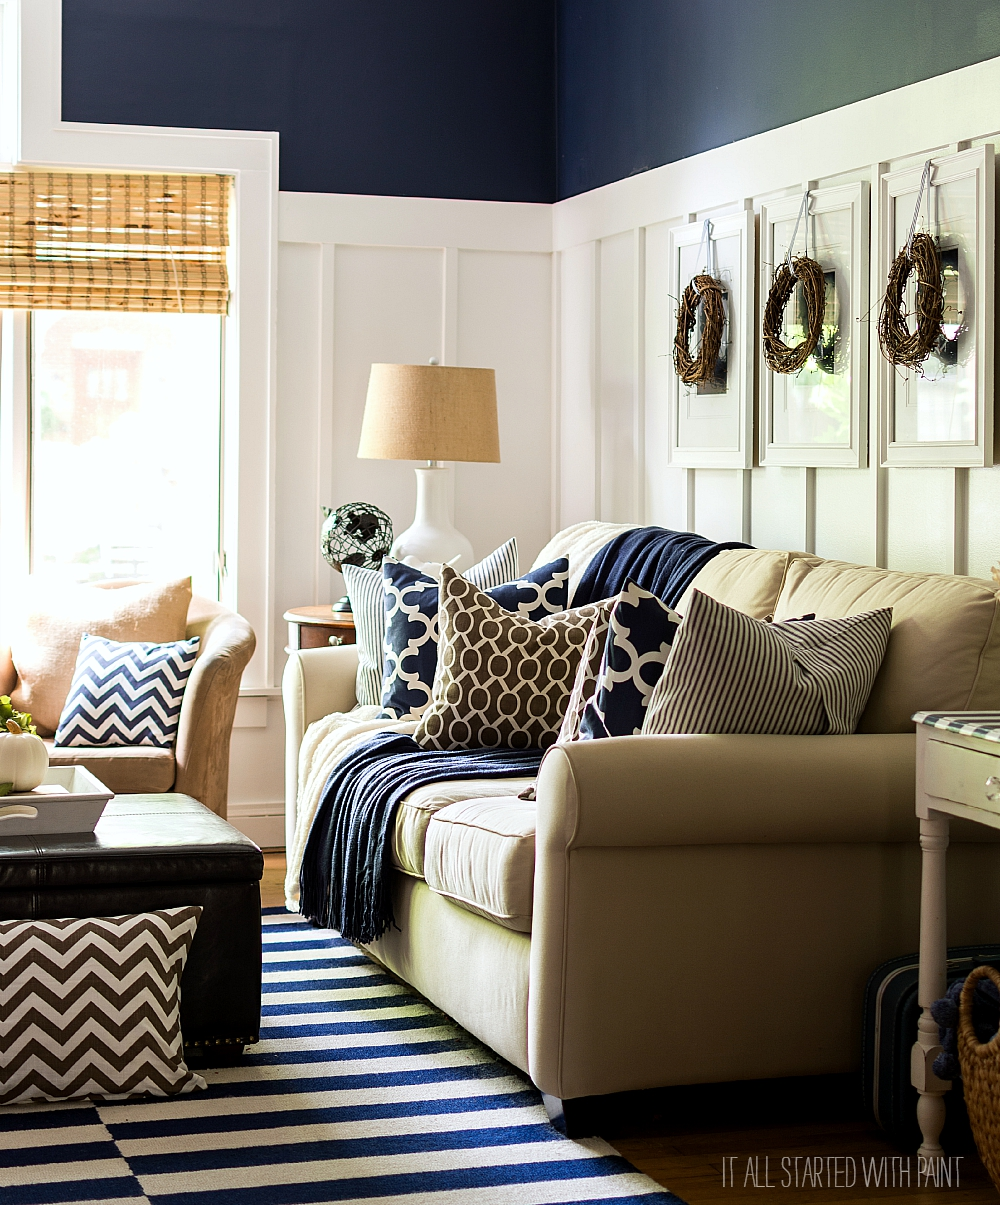 fall decorating ideas using brown and navy neutrals board and batten living room decorated forfall decor in navy and blue. Interior Design Ideas. Home Design Ideas